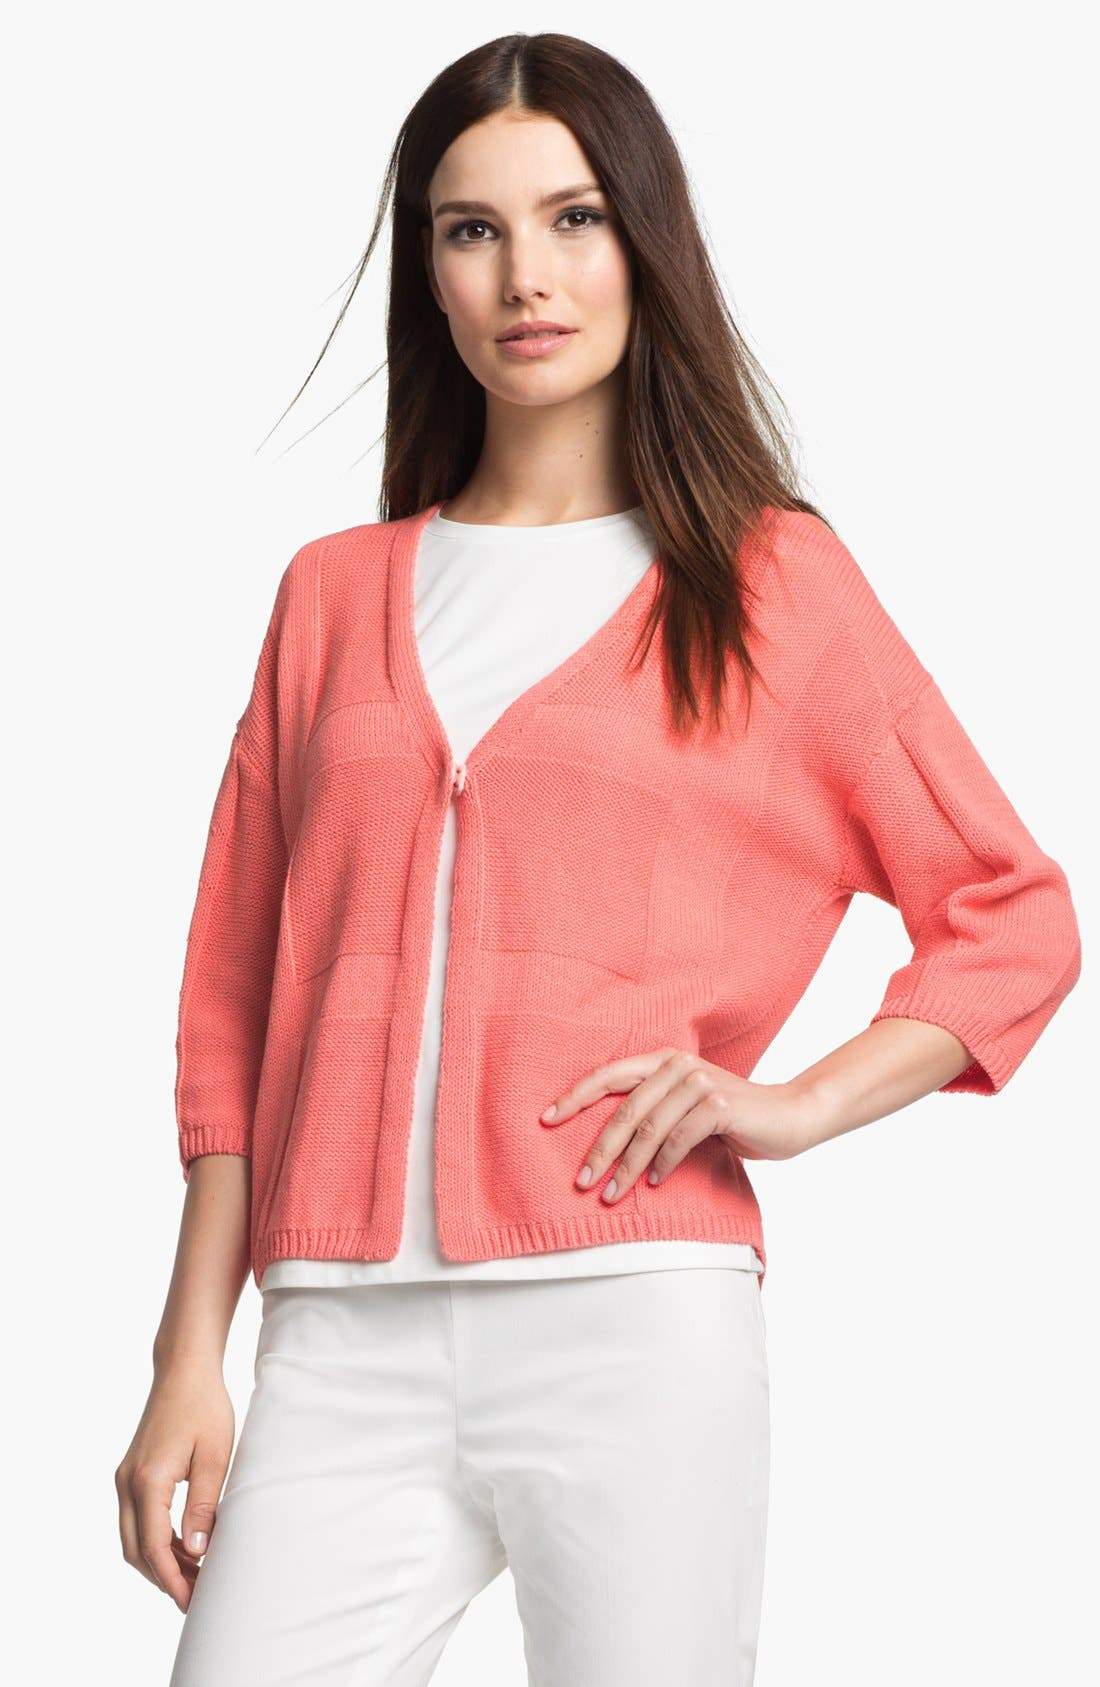 Alternate Image 1 Selected - Lafayette 148 New York 'Essential' V-Neck Cotton Blend Sweater